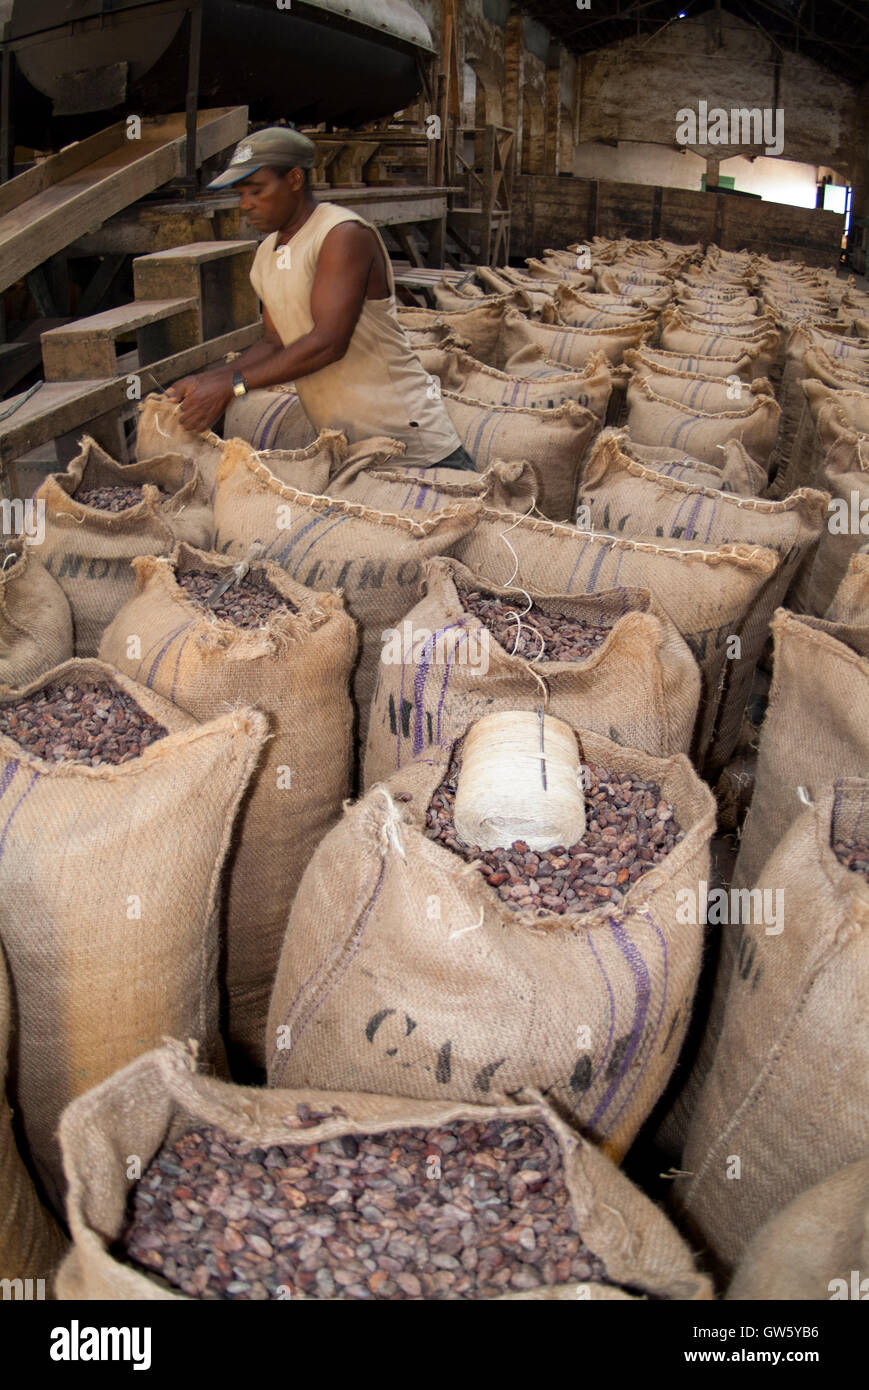 Cocoa beans packed in sacks after roasting, ready to be shipped. São Tomé e Príncipe - Stock Image